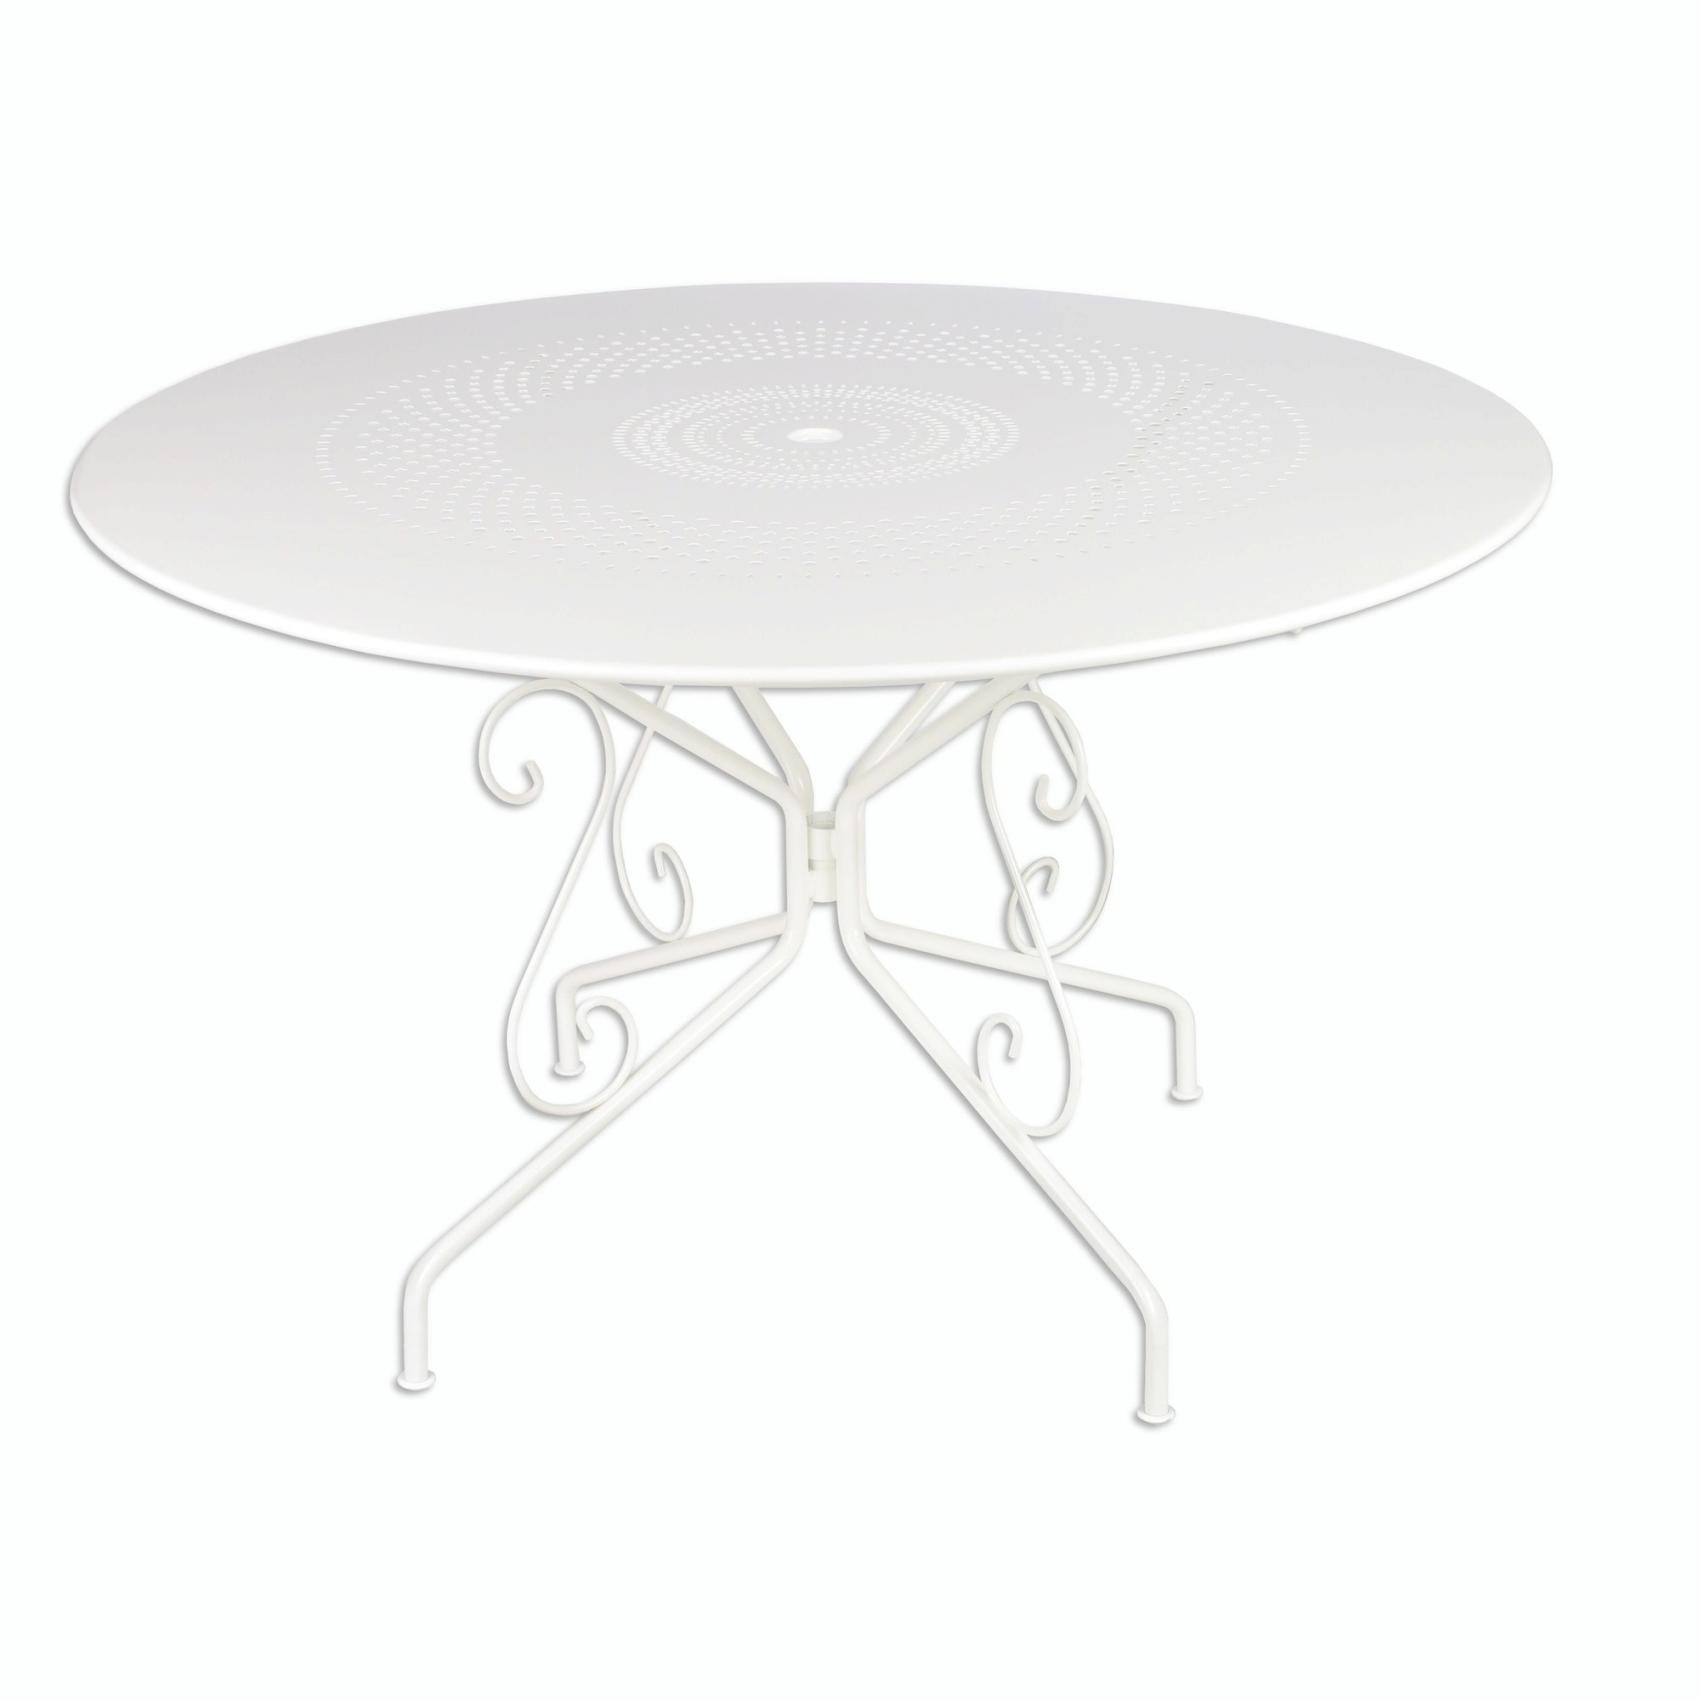 Emejing Table Jardin Ronde Blanche Plastique Ideas - House ...